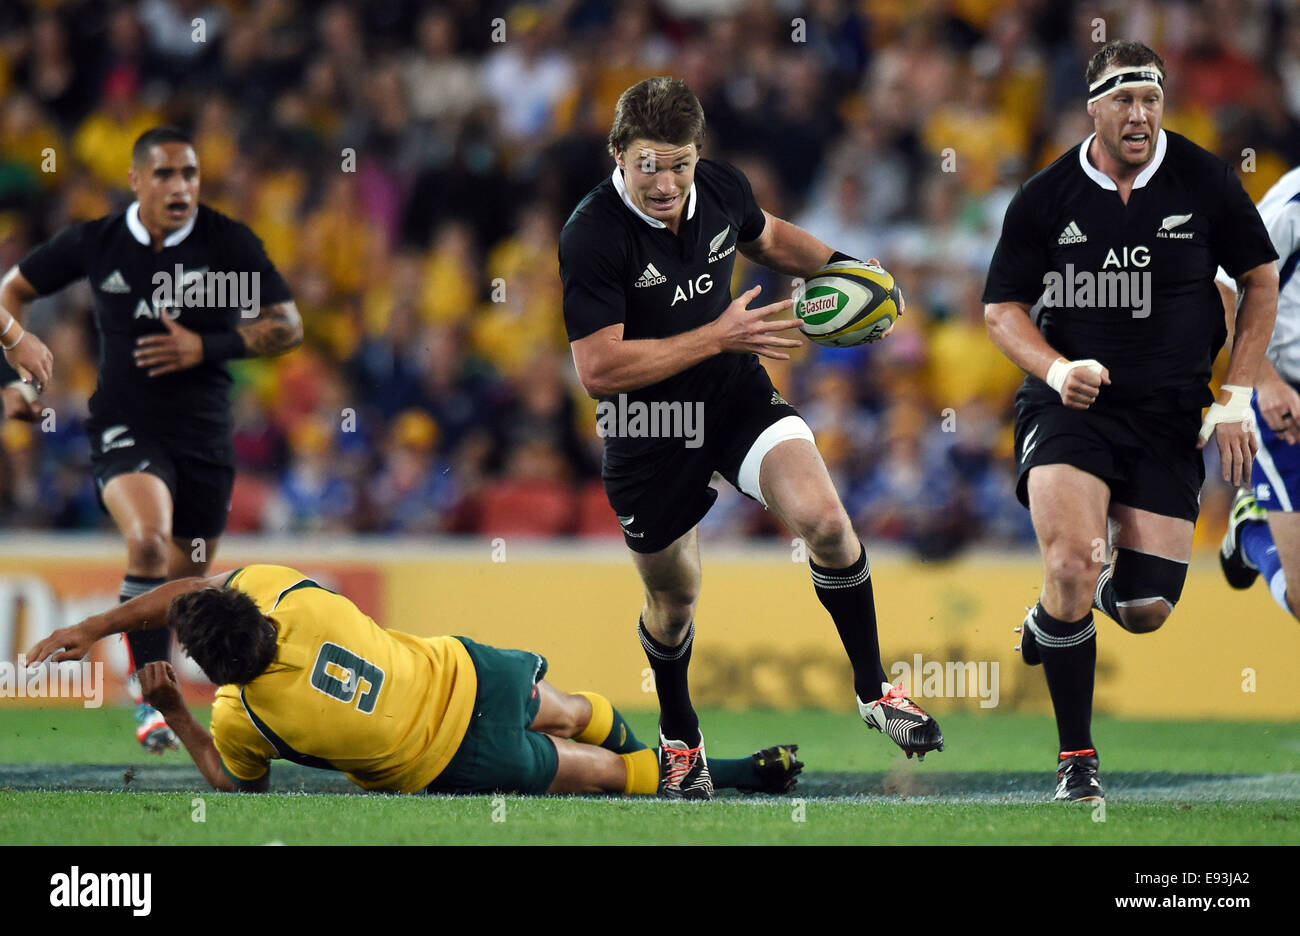 Suncorp Stadium Brisbane Australia 18th Oct 2014 Beauden Stock Photo Alamy